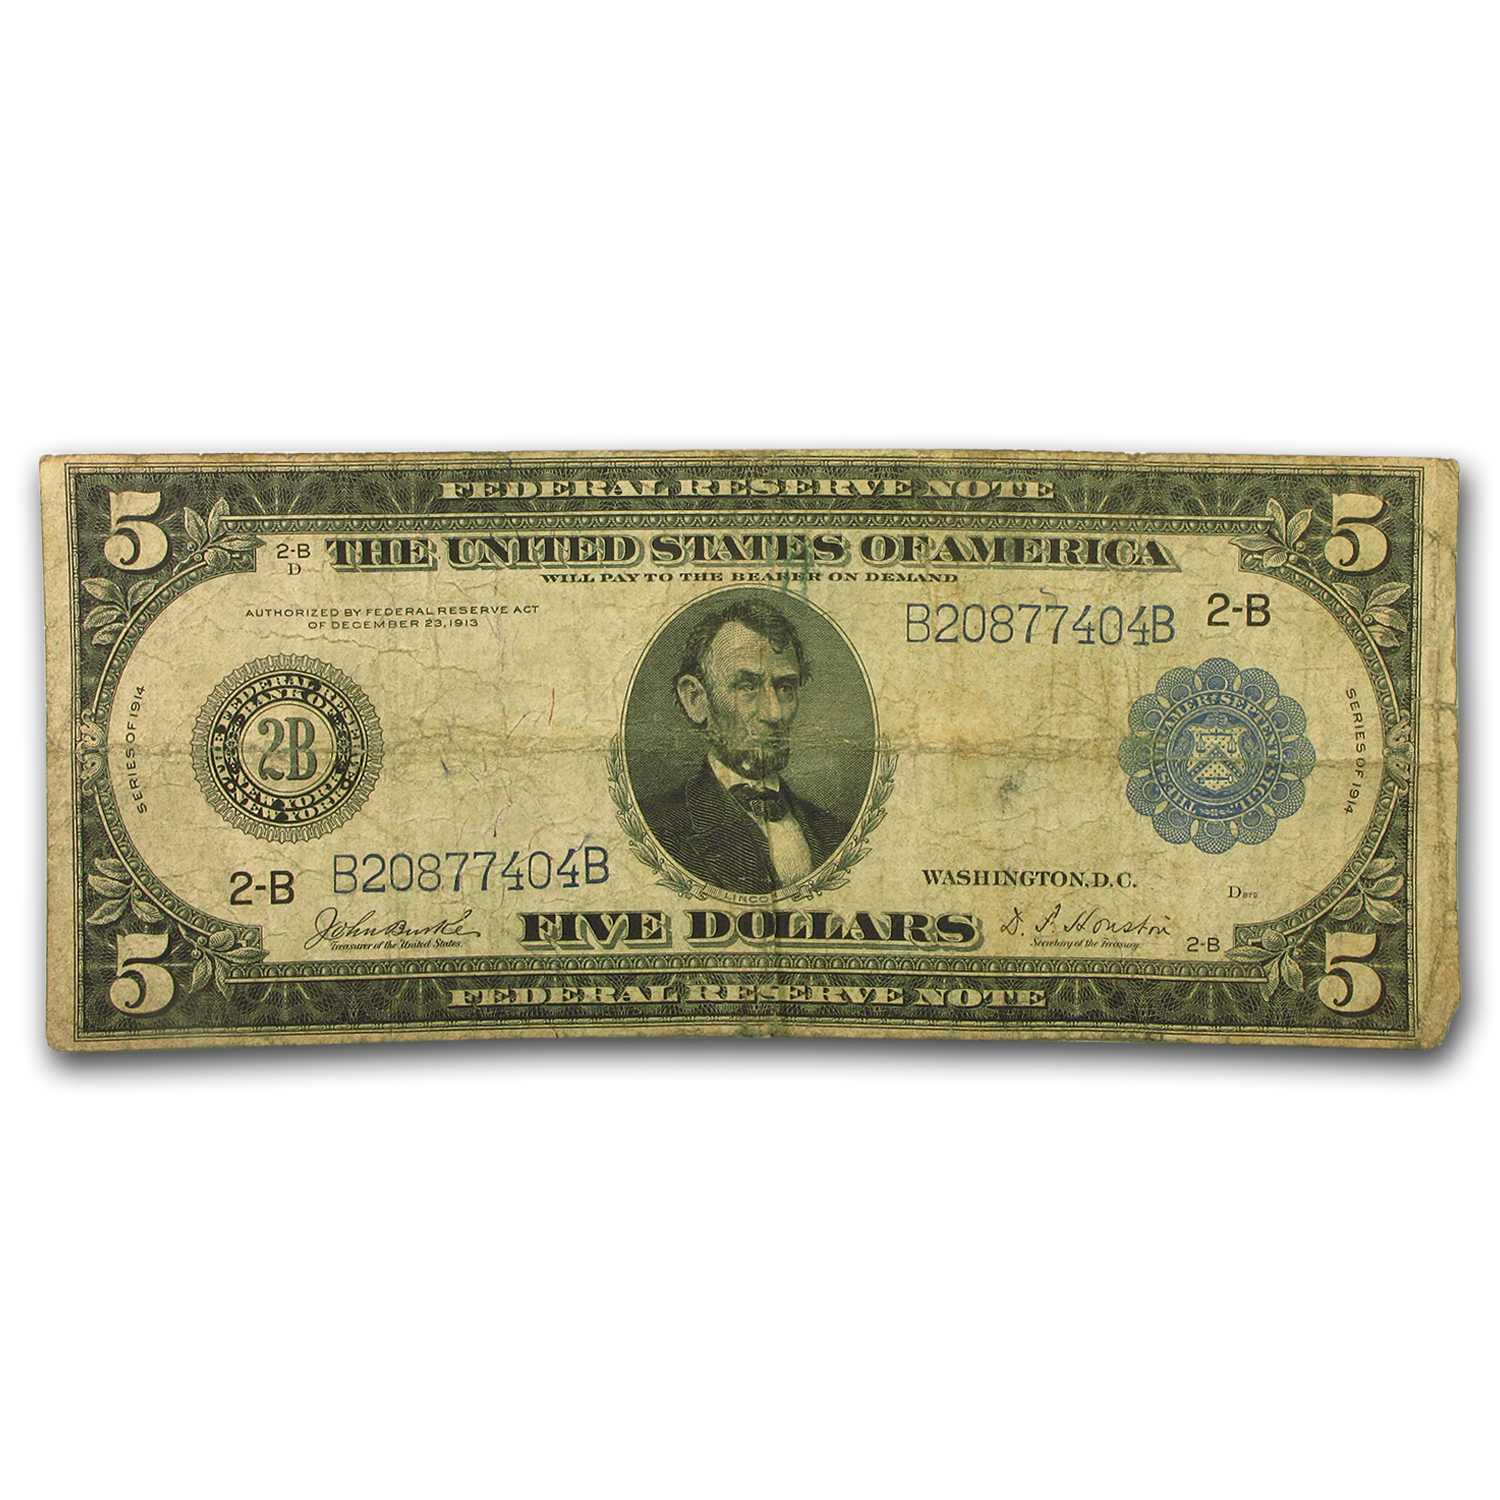 1914 (B-New York) $5.00 FRN VG (FR#850)